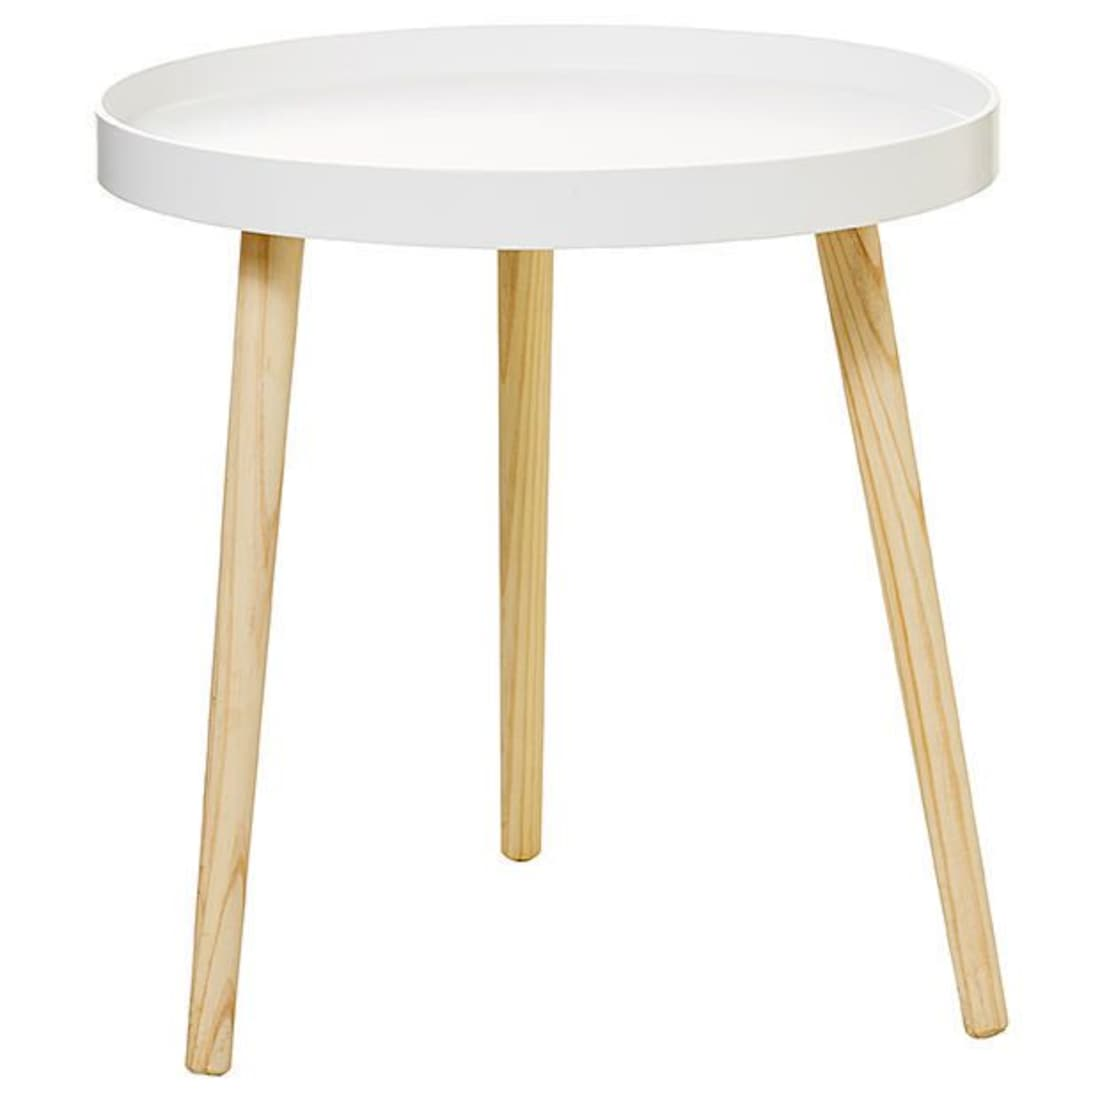 round side tray table white target end tables coffee stanley sophia collection big kmart coupons unfinished furniture canton copper storage cabinets oak lift runner for lawn made